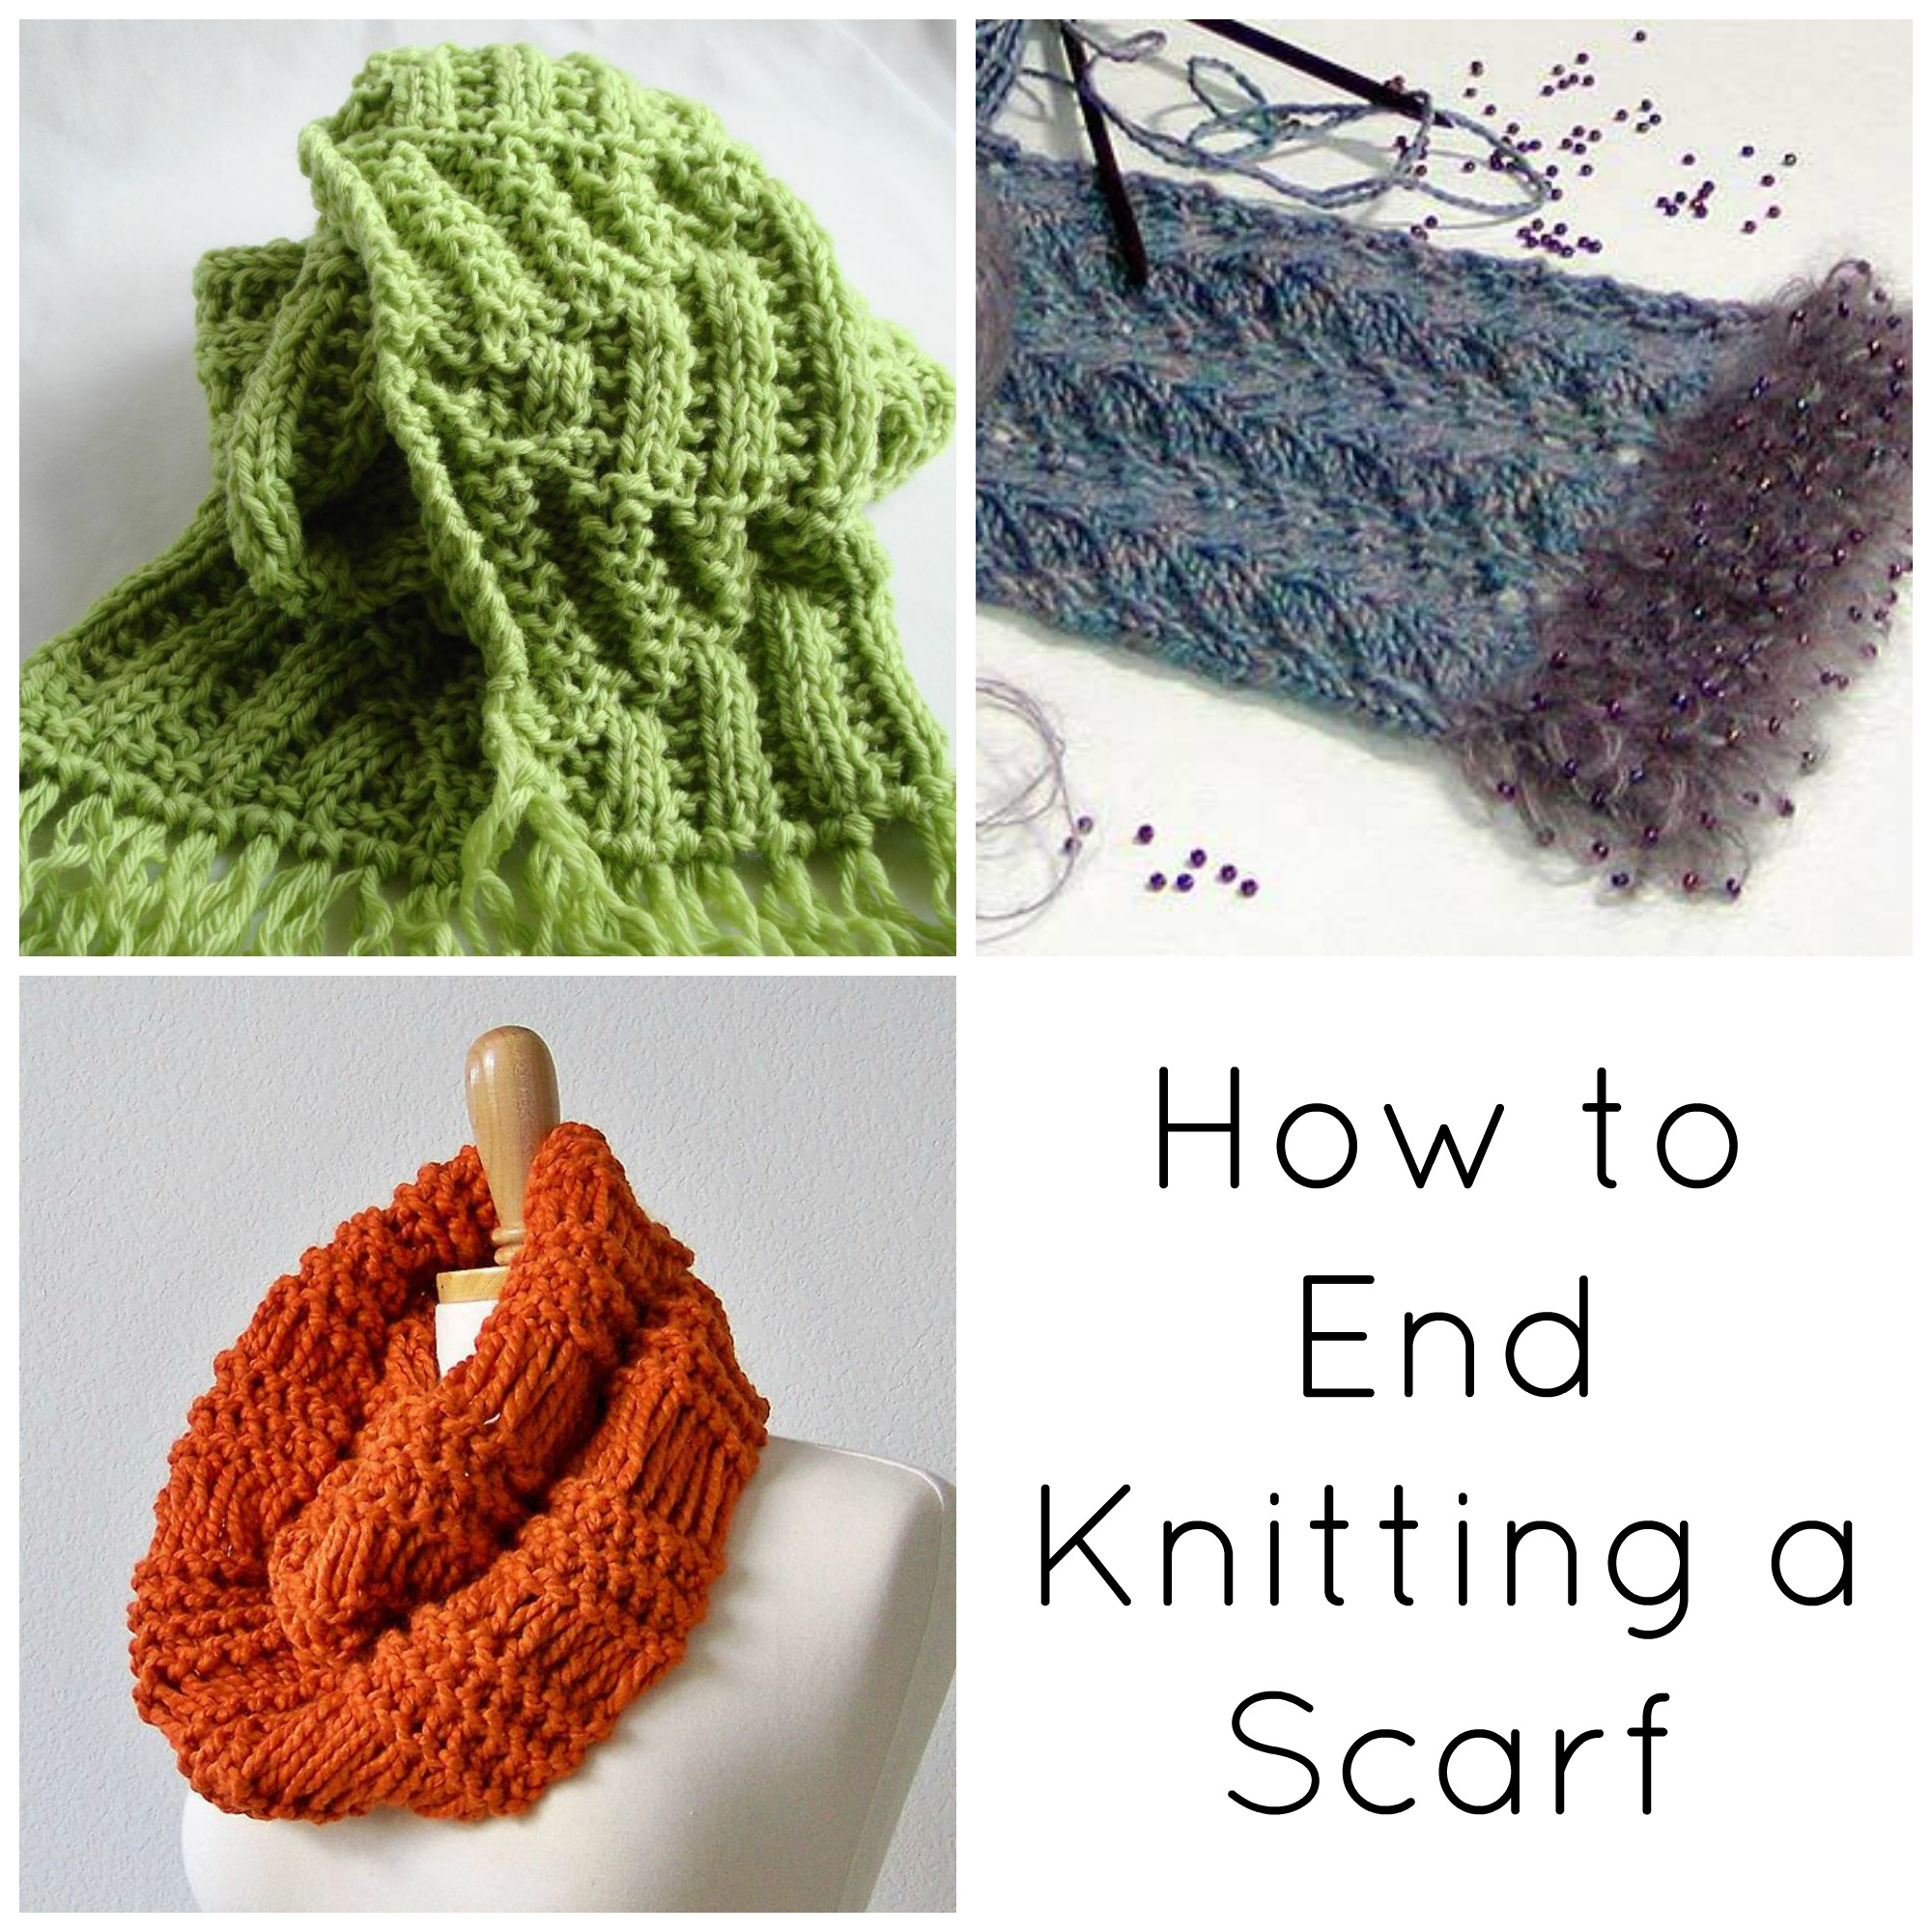 How to End Knitting a scarf